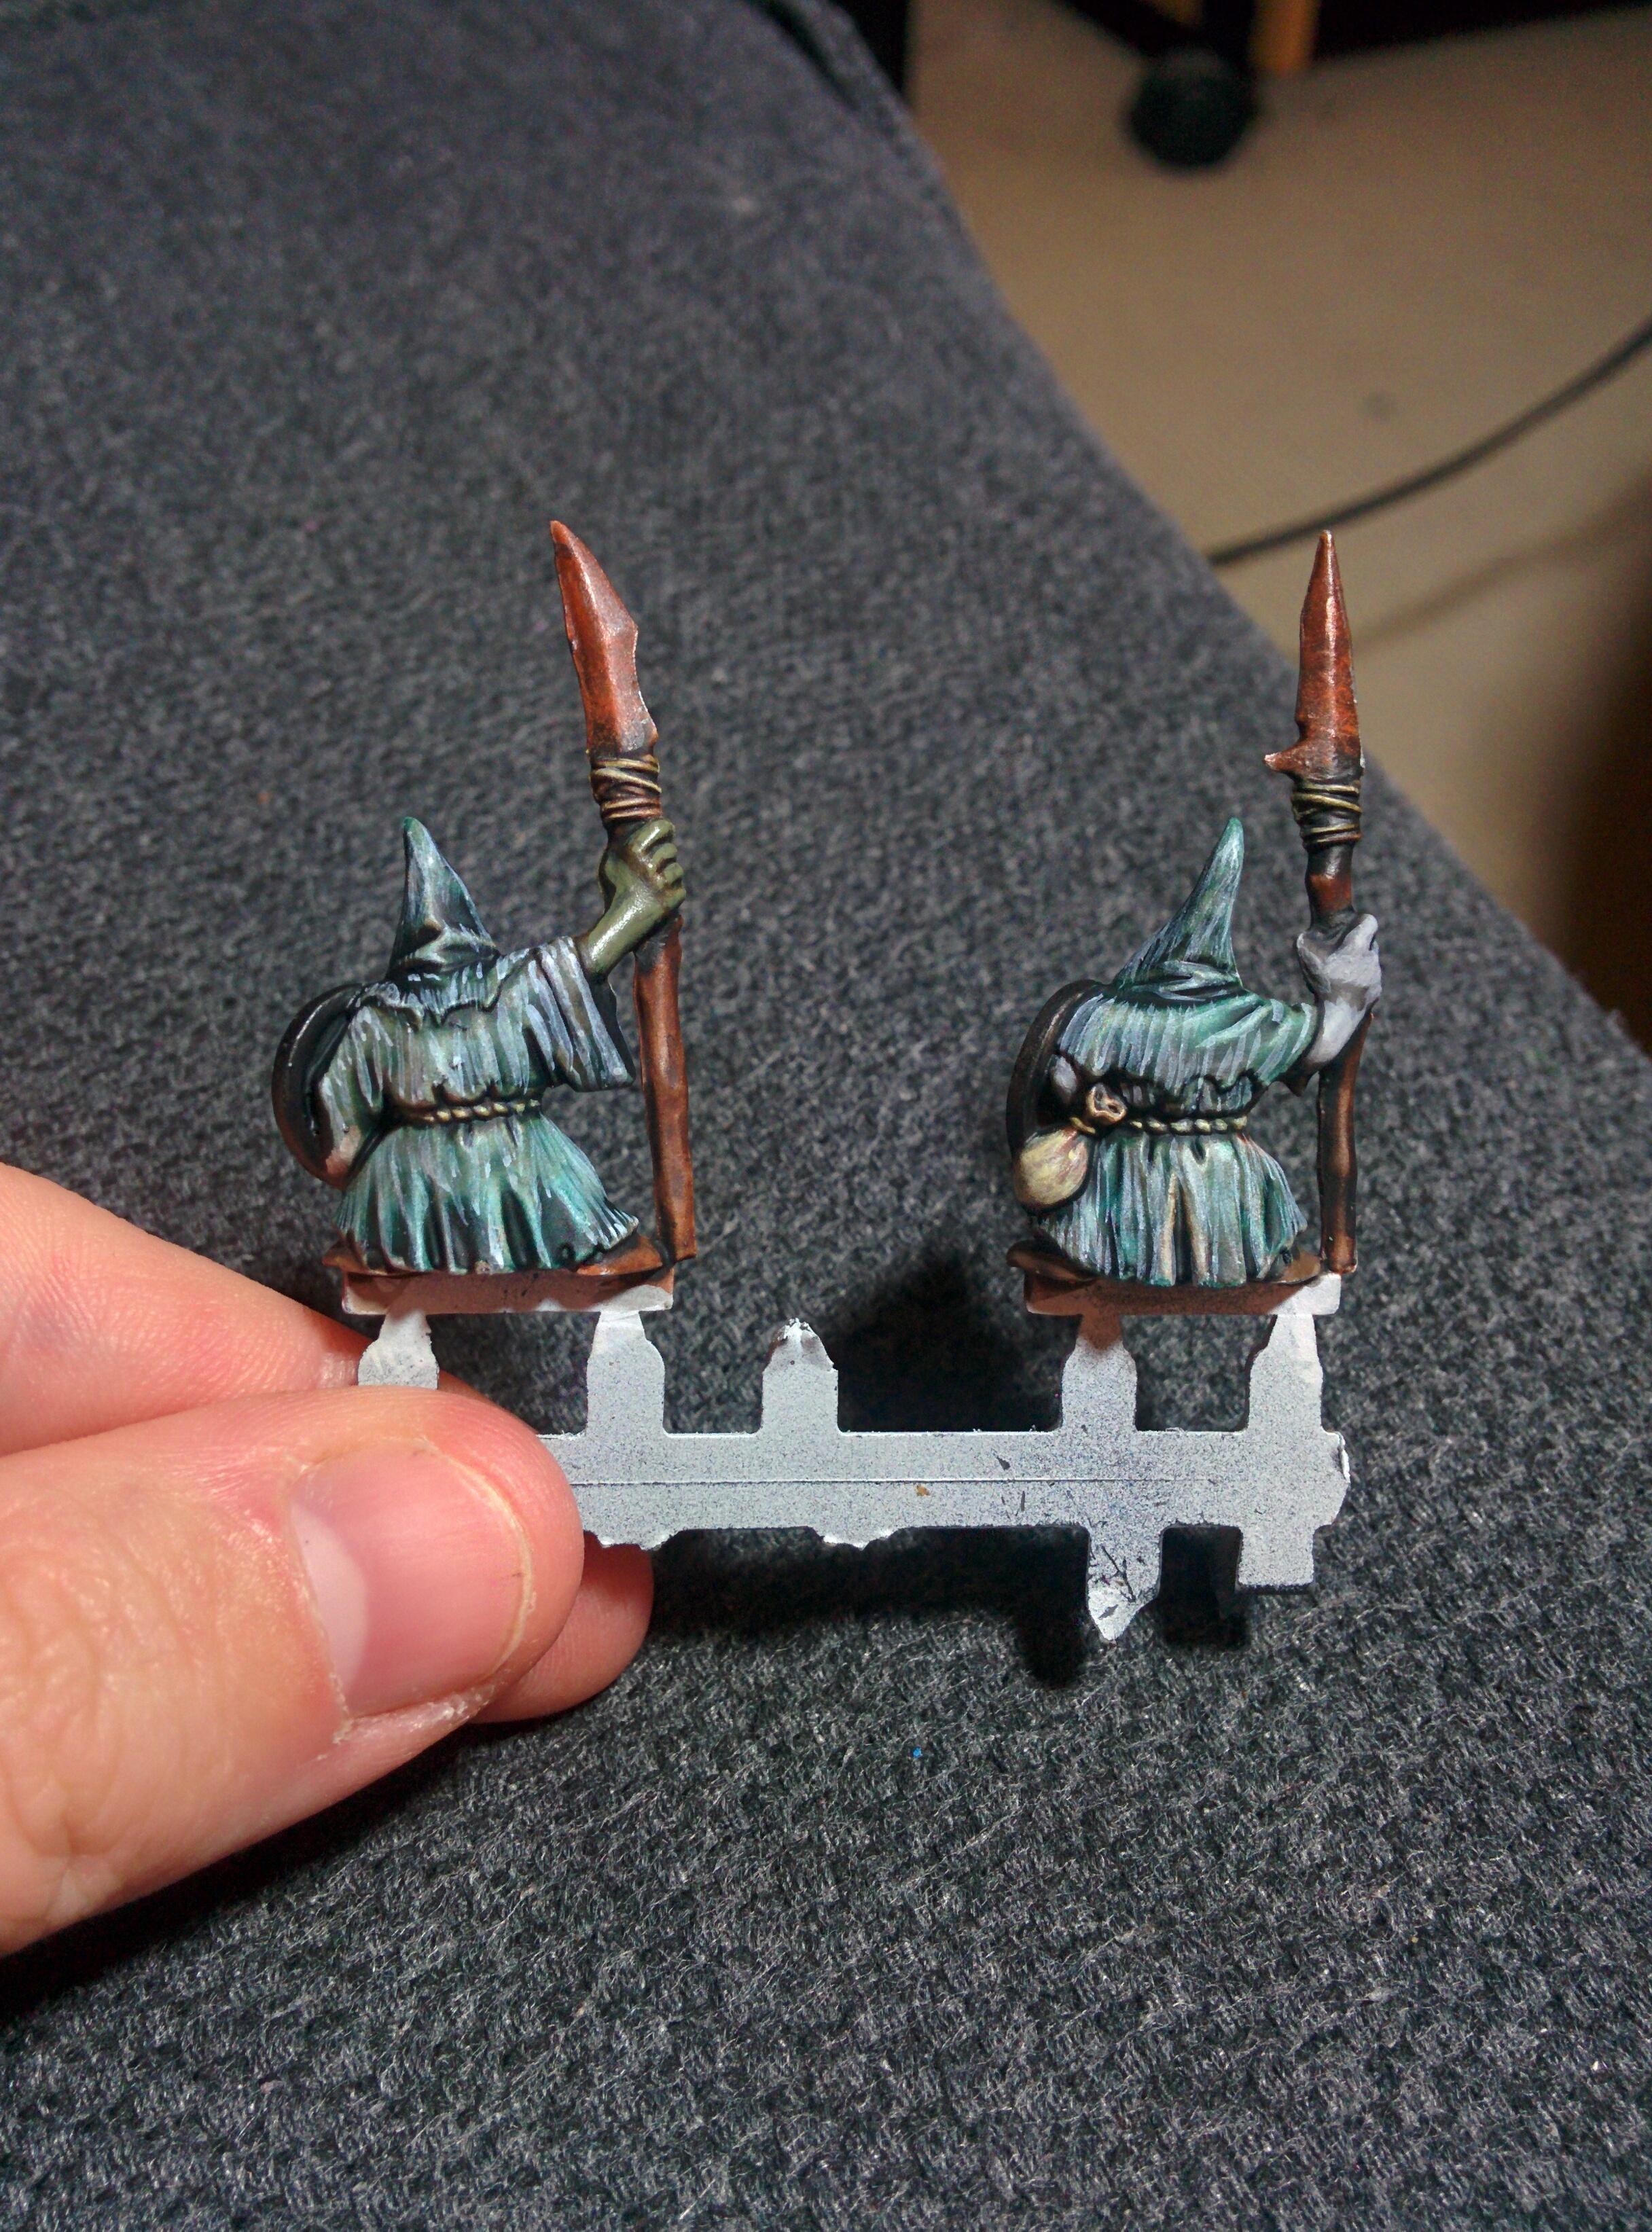 Giaks, Goblins, One Of Those Old Starter Sets I Think But Bugger If I Can Remember Which One, Test Models, Work In Progress, Works In Progress